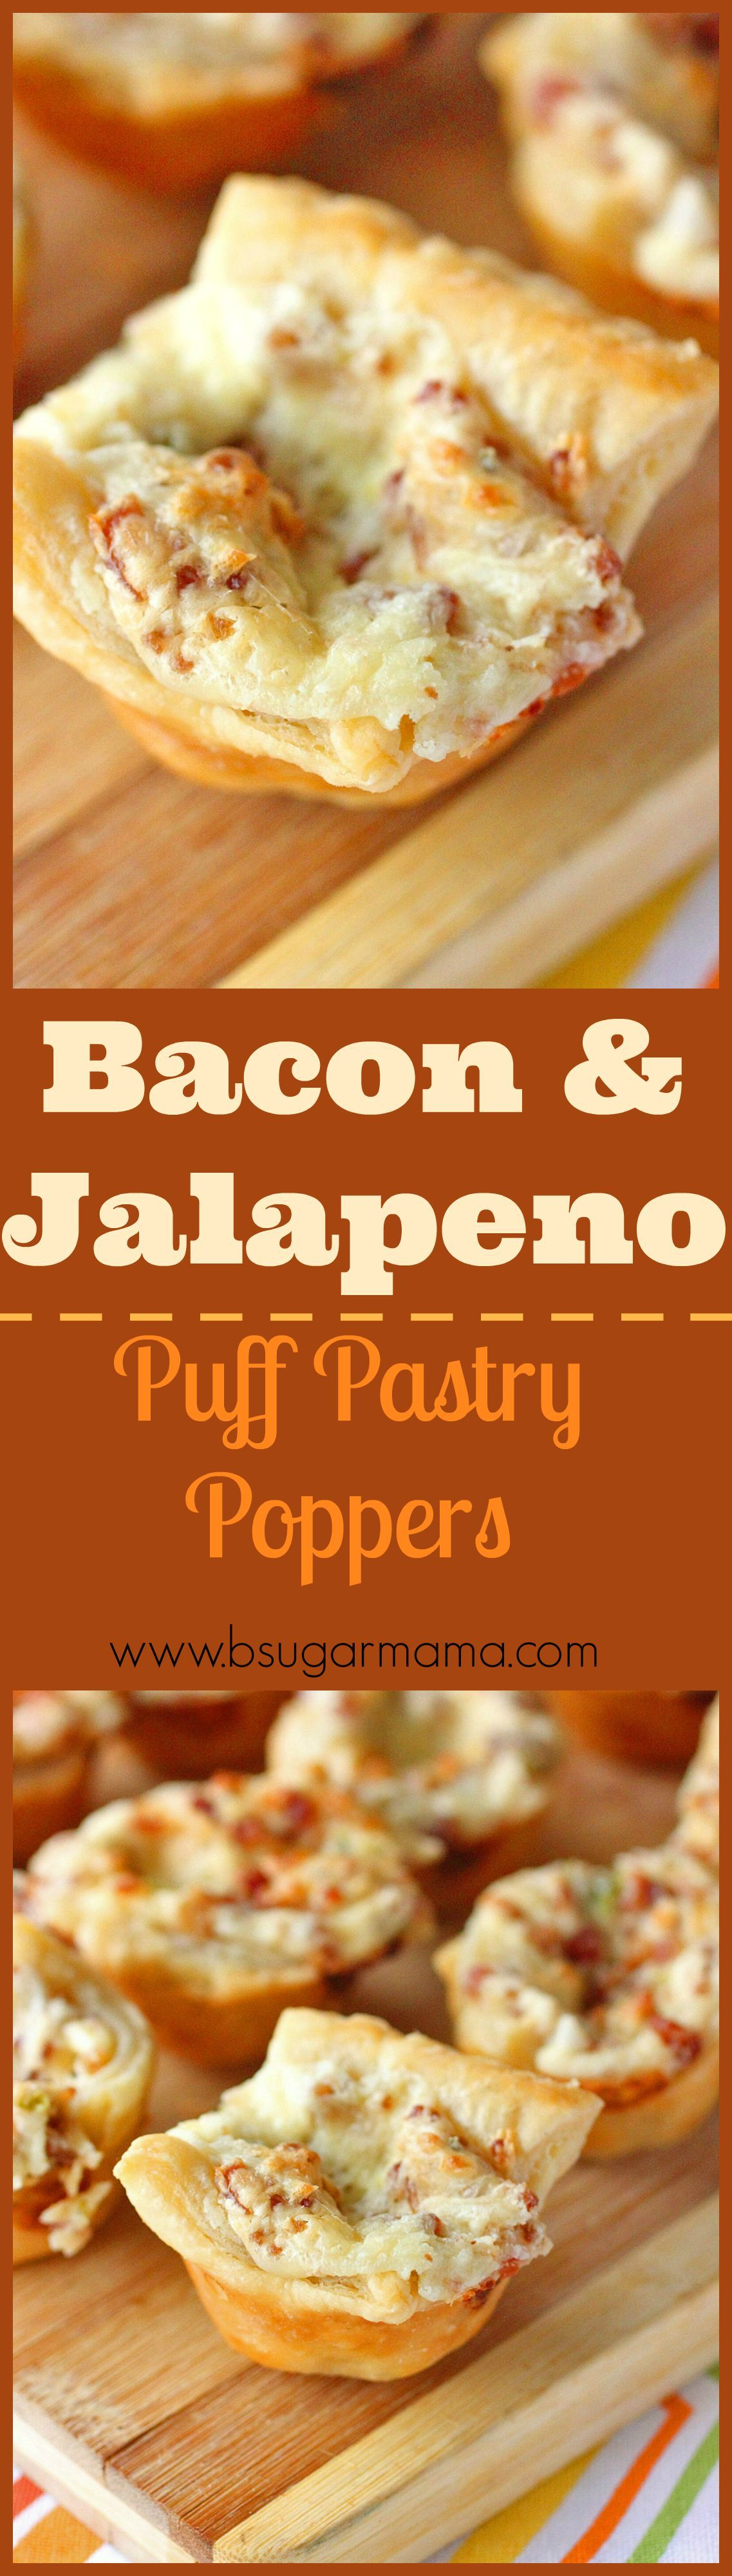 Photo of Bacon and Jalapeno Puff Pastry Bites   Brown Sugar Food Blog